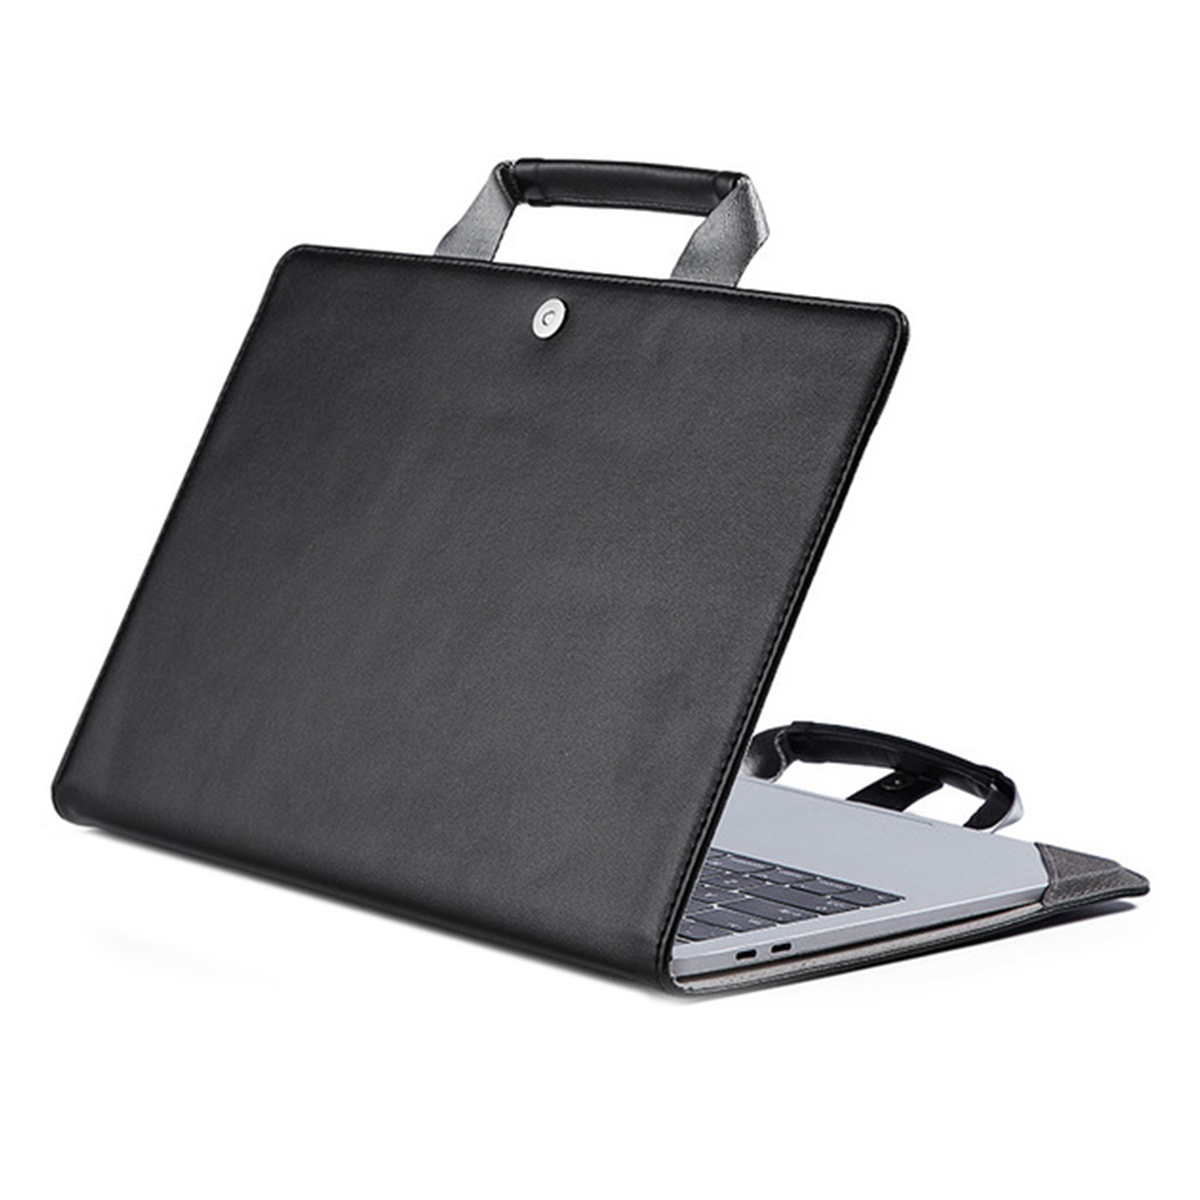 <font><b>Leather</b></font> Notebook Cover <font><b>Laptop</b></font> Case with Handle Waterproof Computer <font><b>Sleeve</b></font> for Macbook Air 12